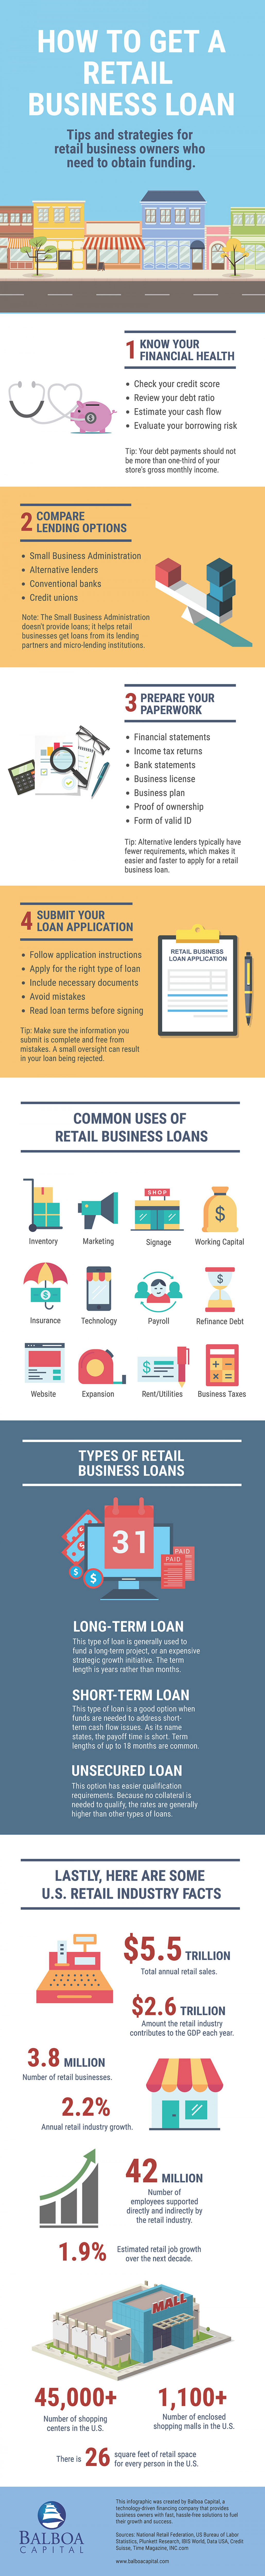 How To Get A Retail Business Loan Infographic